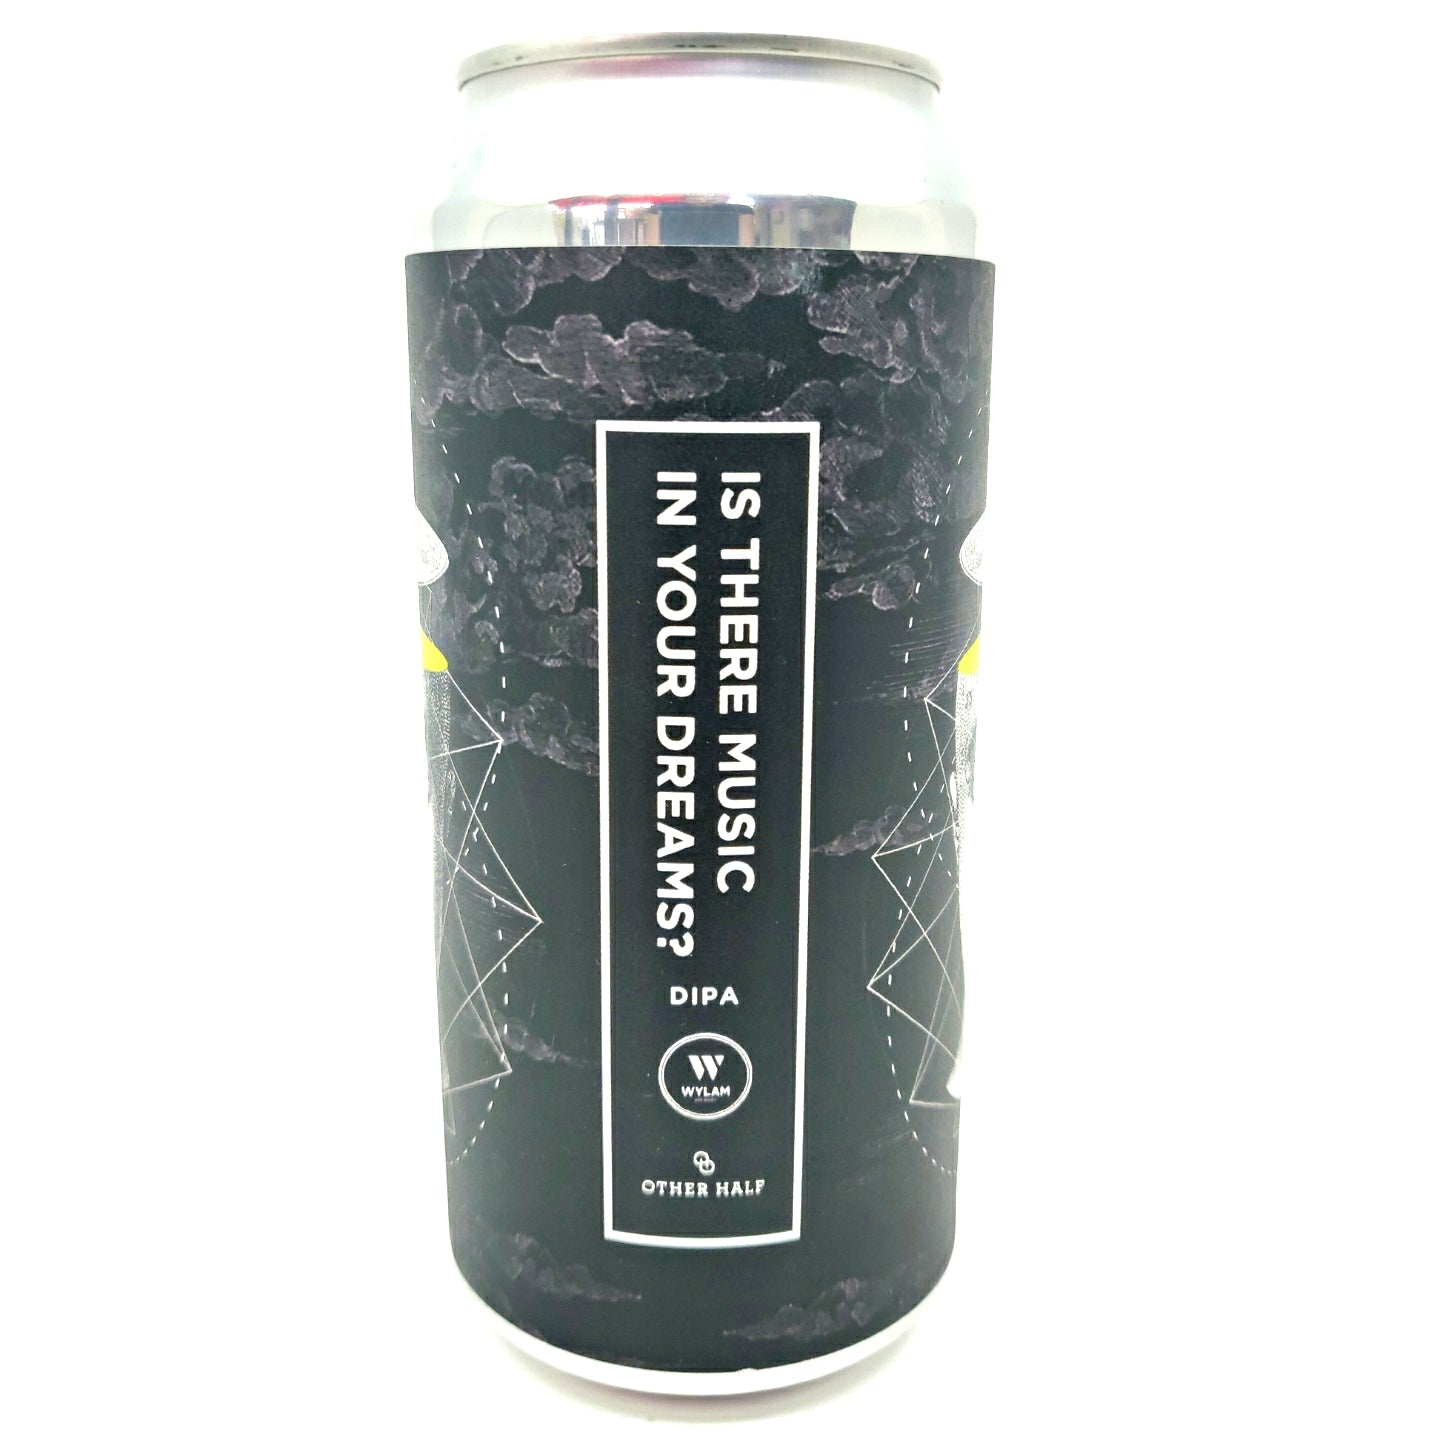 Wylam x Other Half Is There Music In Your Dreams? Double IPA 8.2% (440ml can)-Hop Burns & Black